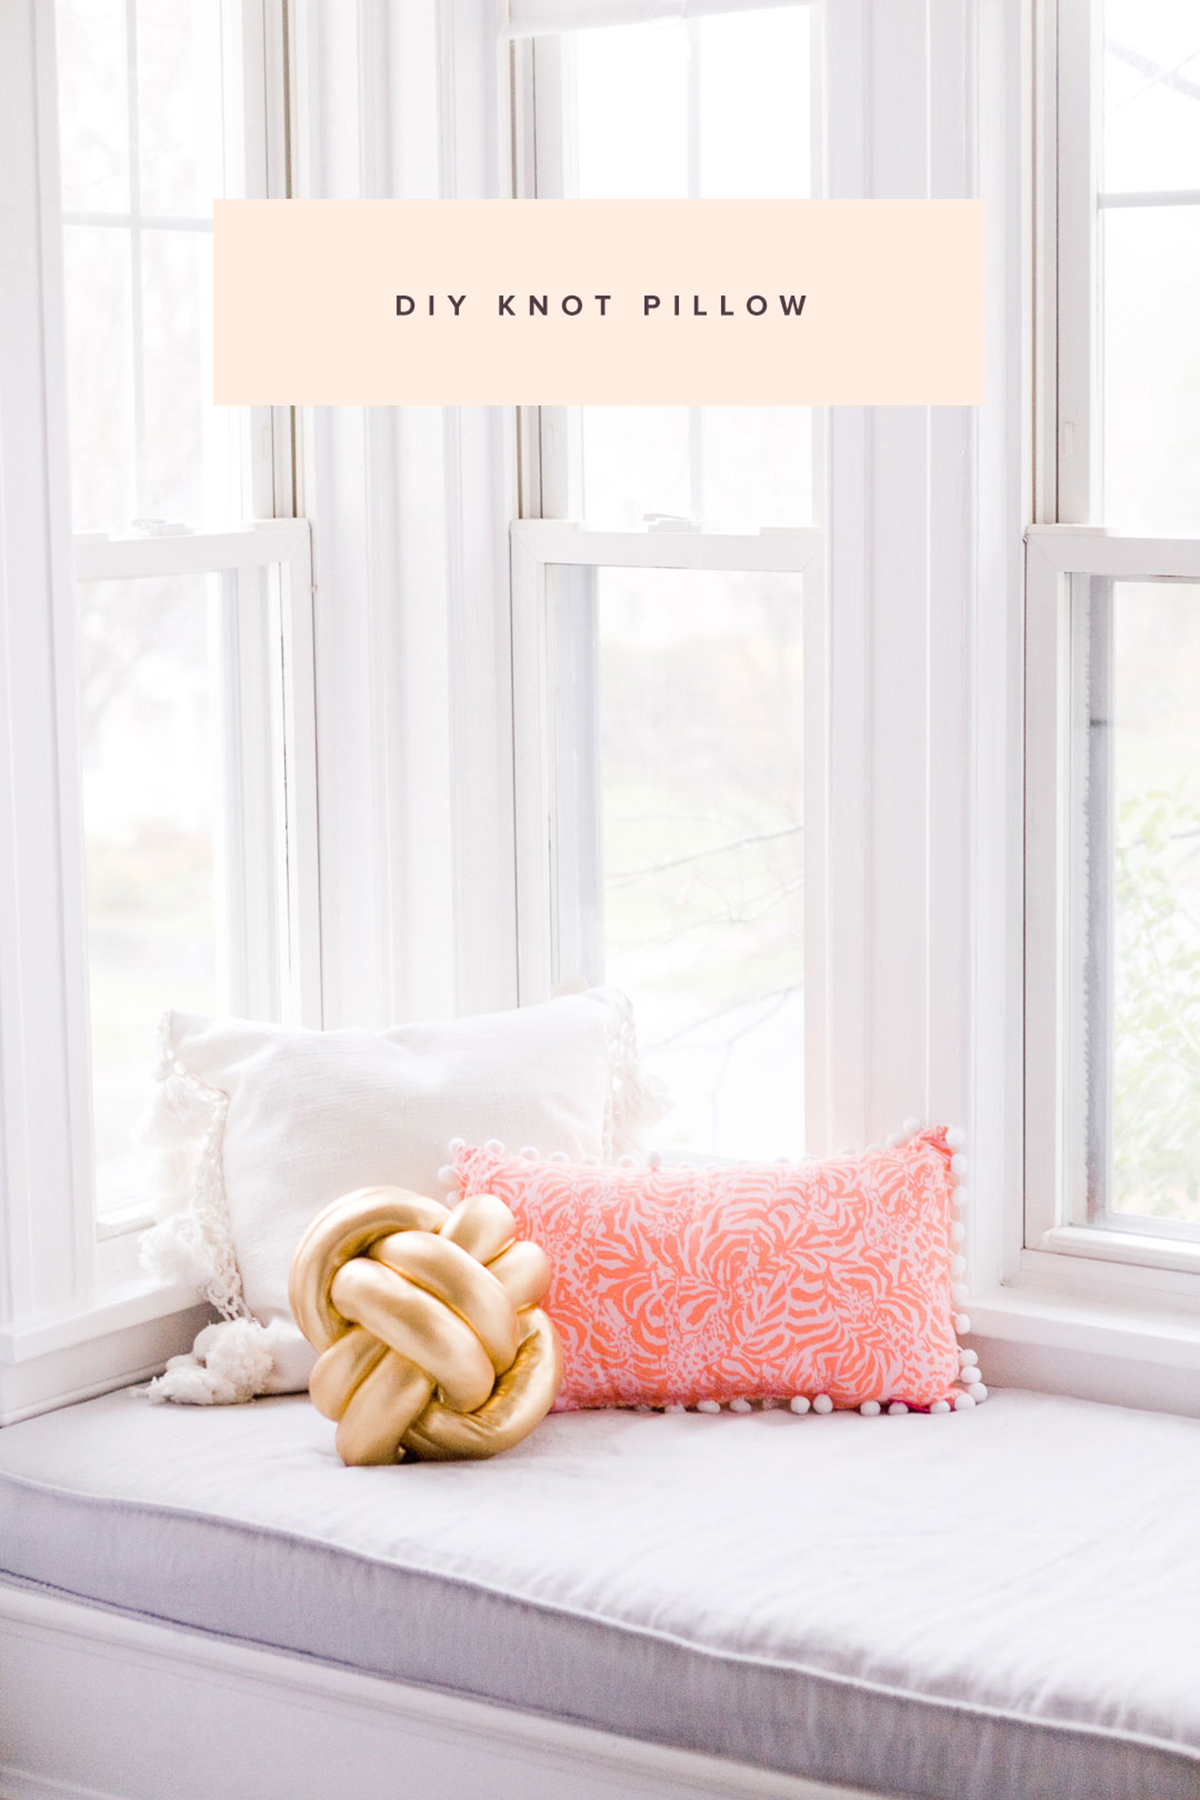 DIY gold spandex knot pillow for an accent